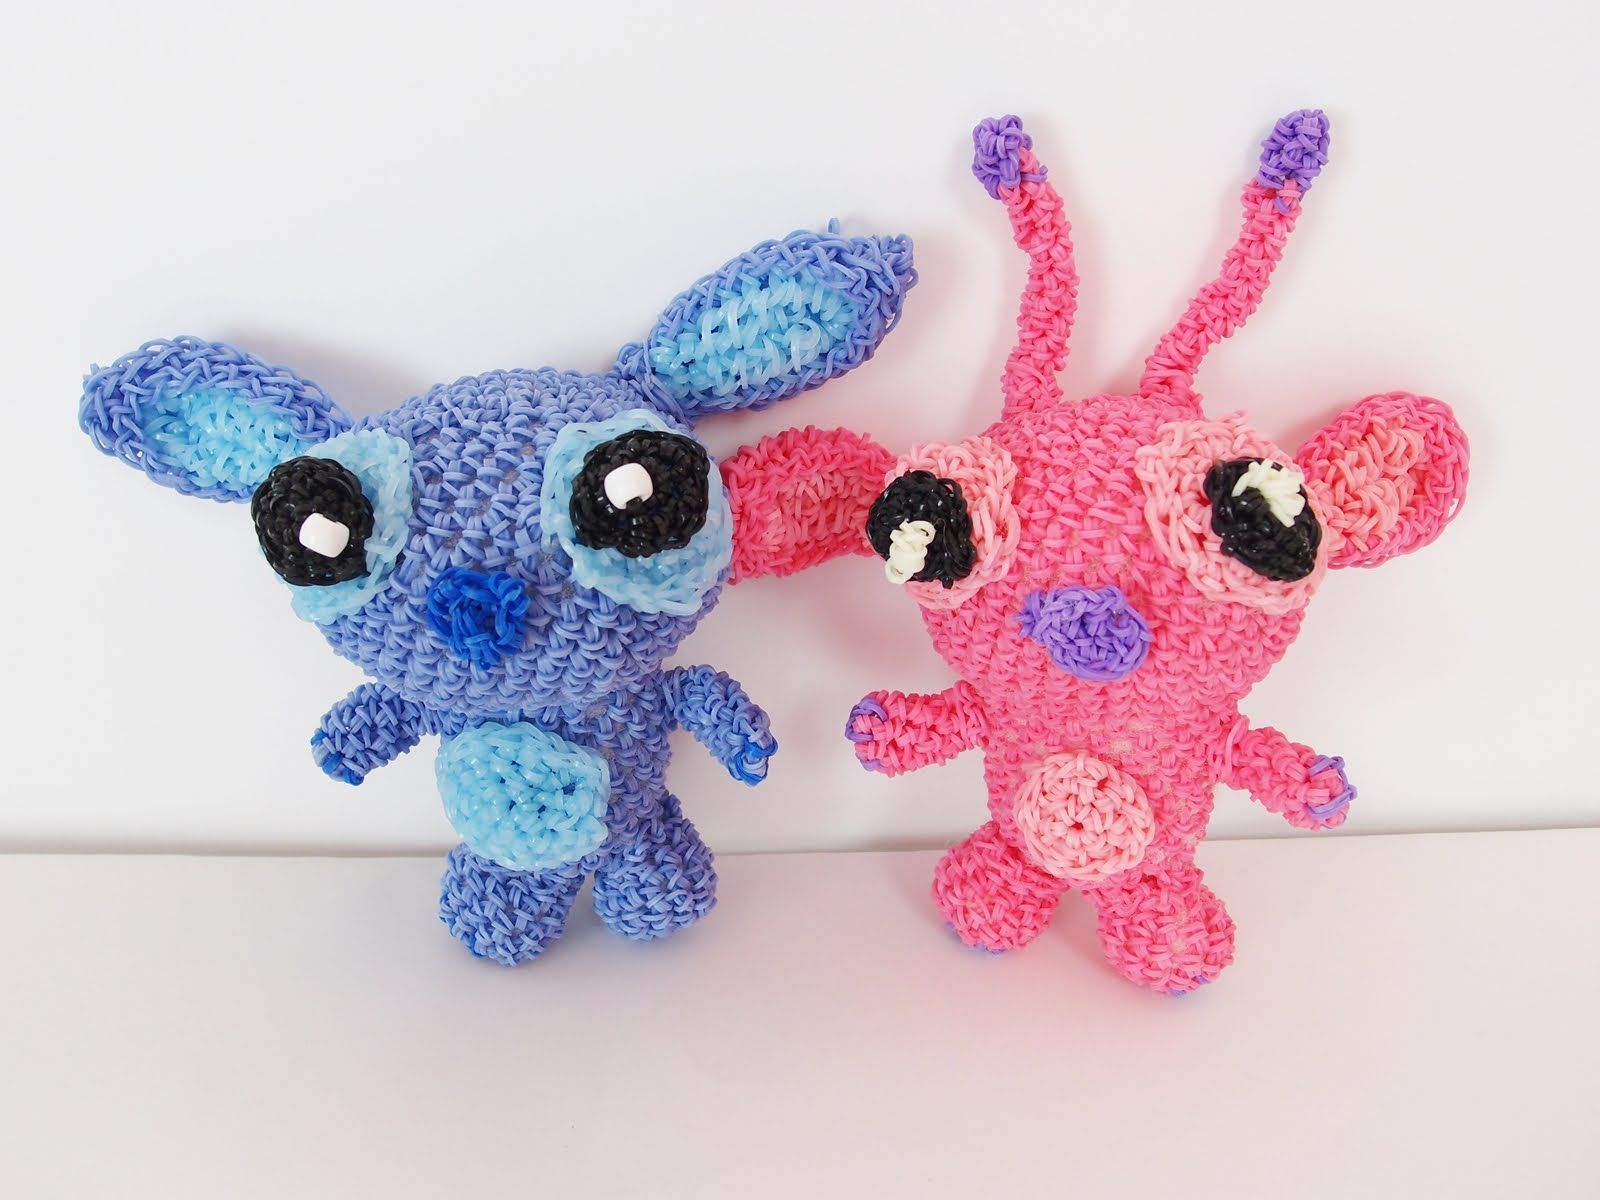 Amigurumi Loom Patterns : Stitch and angel from lilo and stitch rainbow loom bands amigurumi